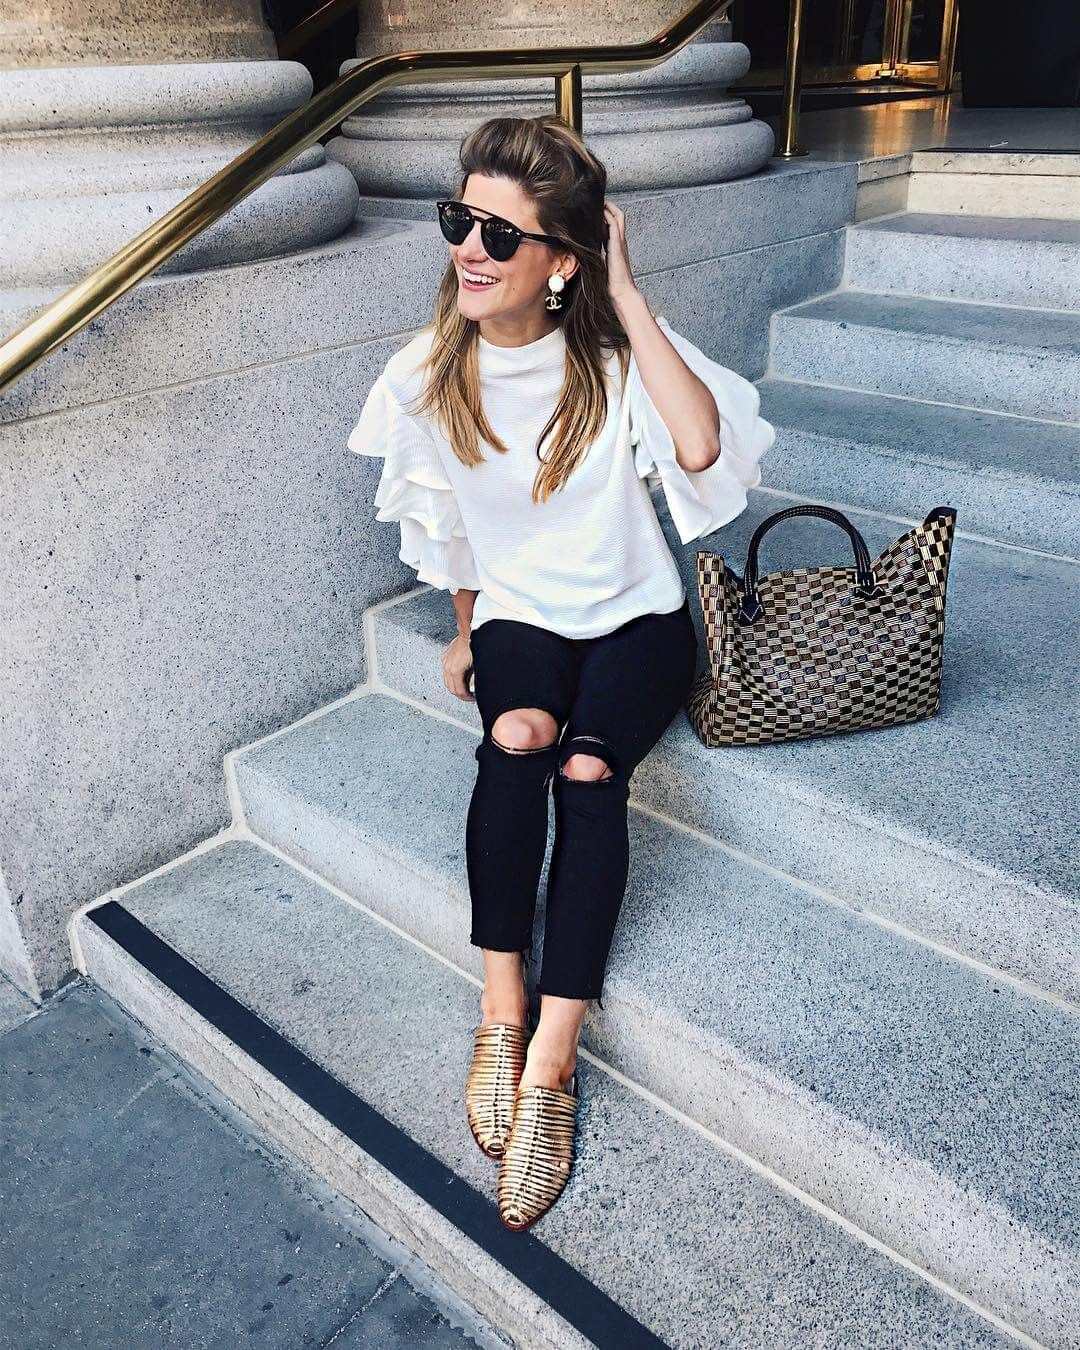 a423a92f161 platform sneakers (& ck out that bracelet) | Fashionista | Inspiración